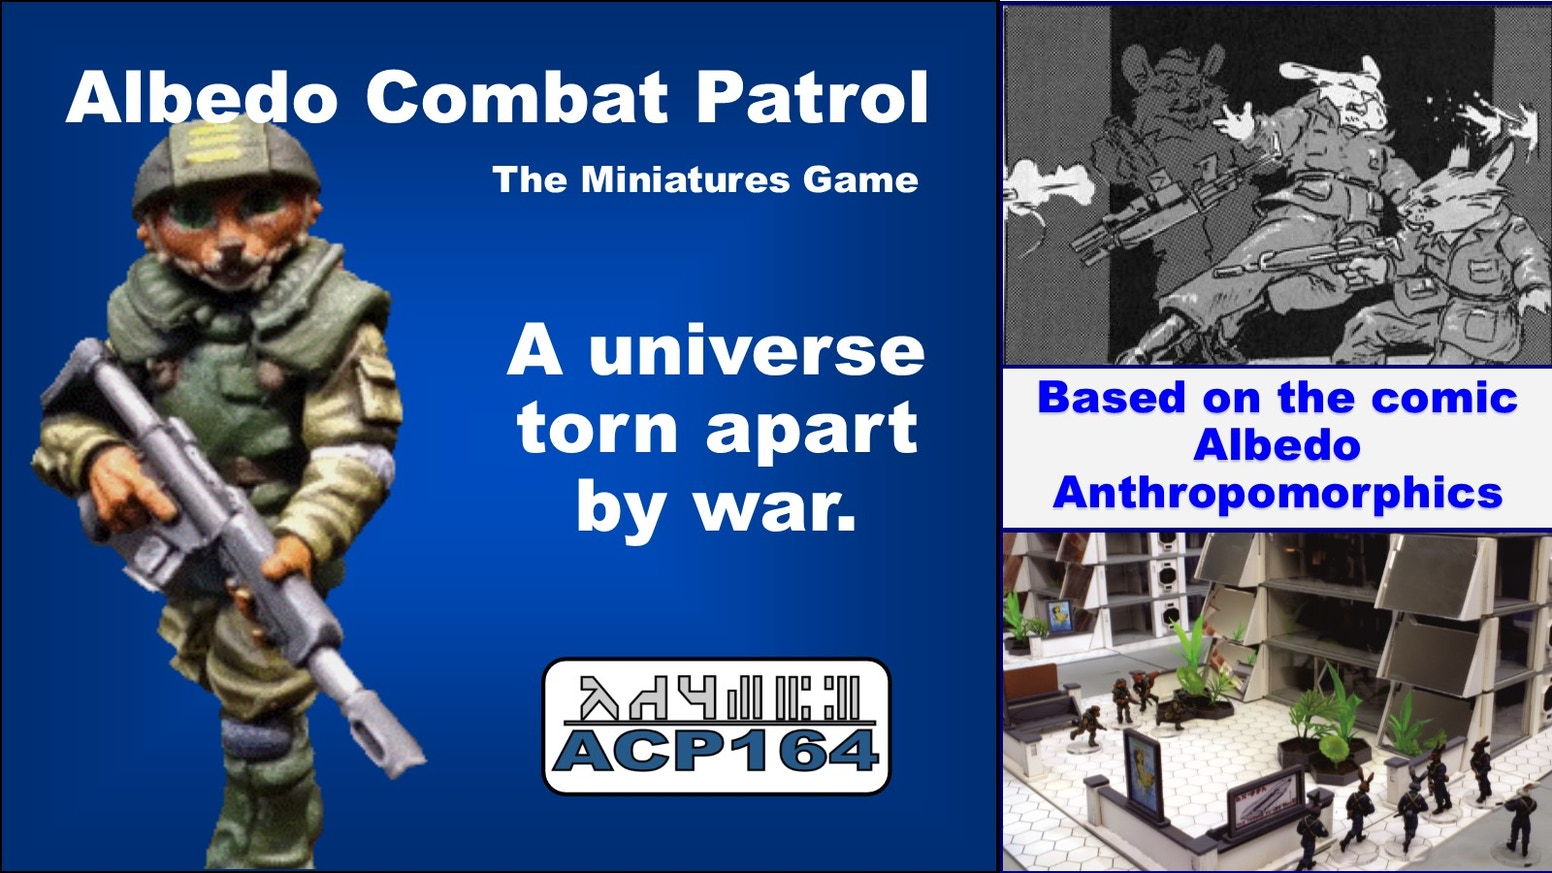 Albedo Combat Patrol is the 28mm miniatures game based on the unique comic book art of Steve Gallacci's Albedo Anthropomorphics.